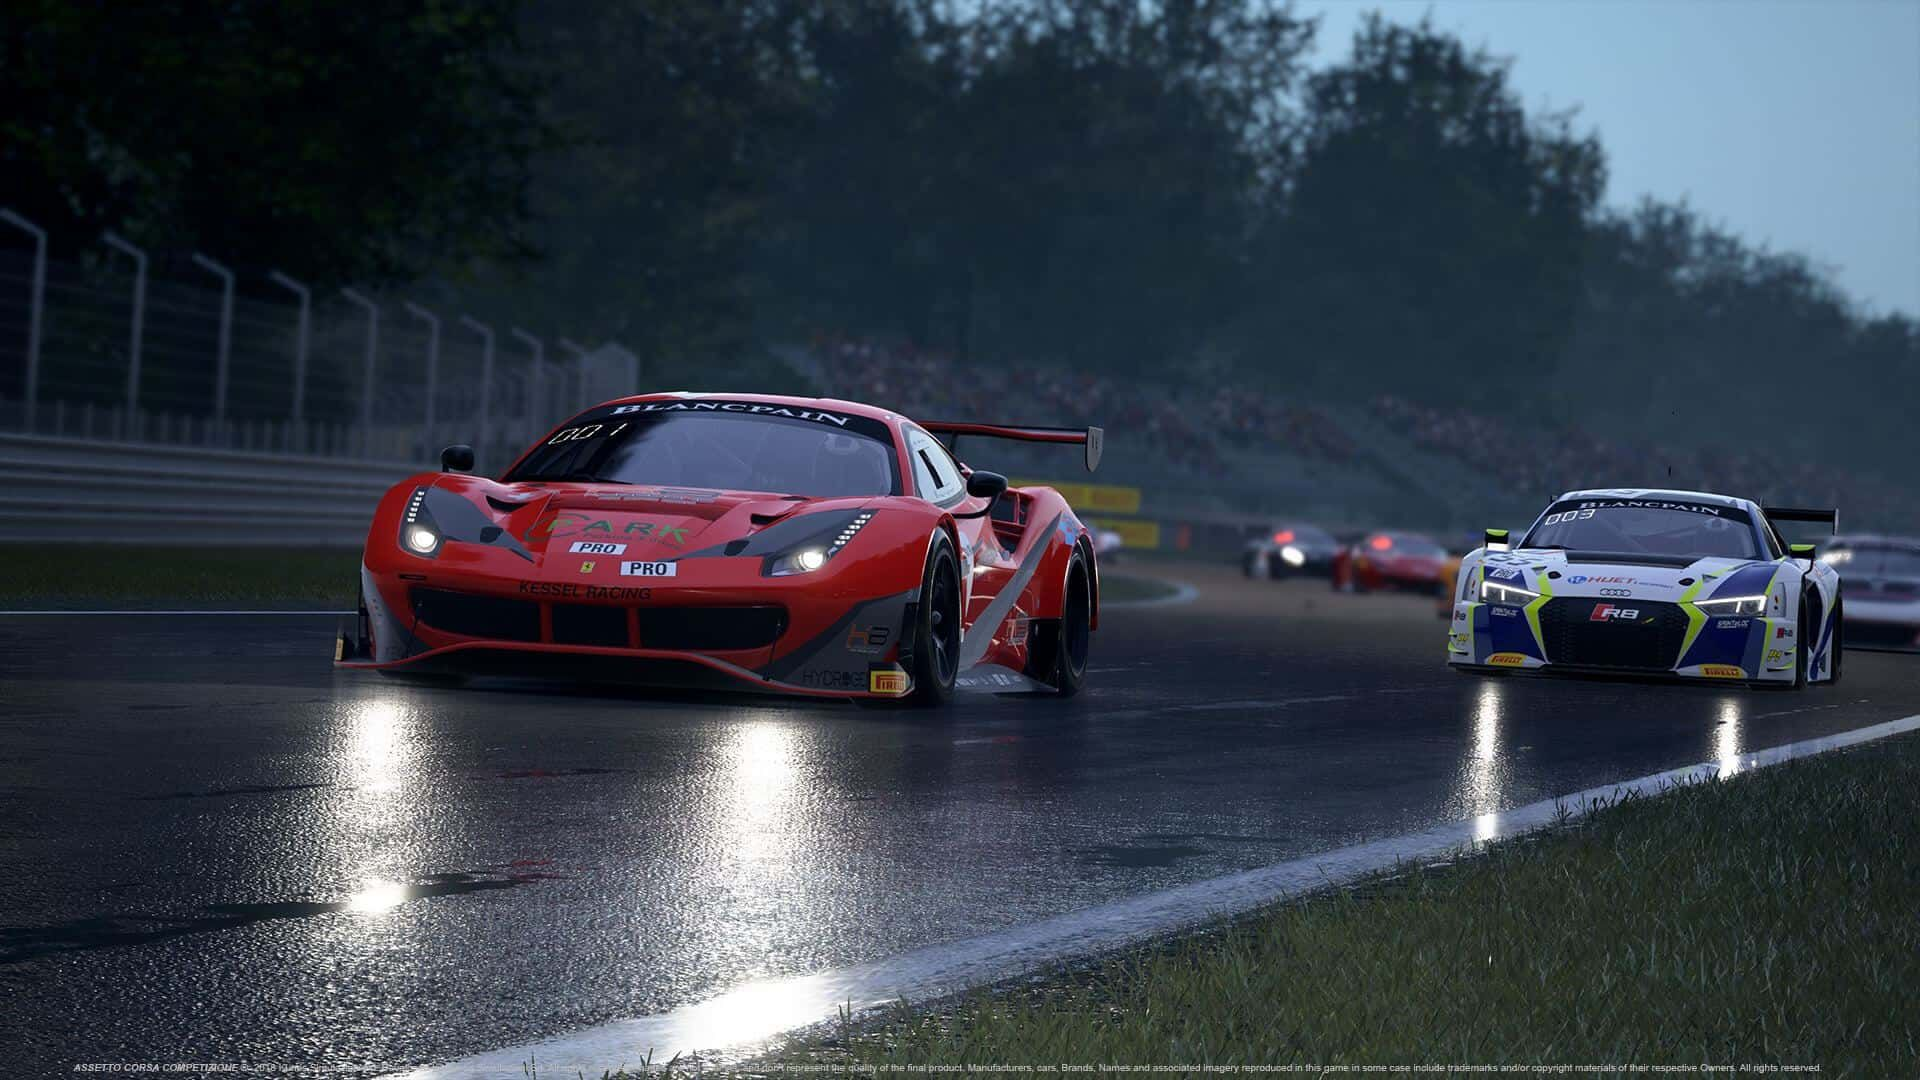 Assetto Corsa Competizione Game Download For PC Full Latest Version | Download games, Car games, Racing simulator